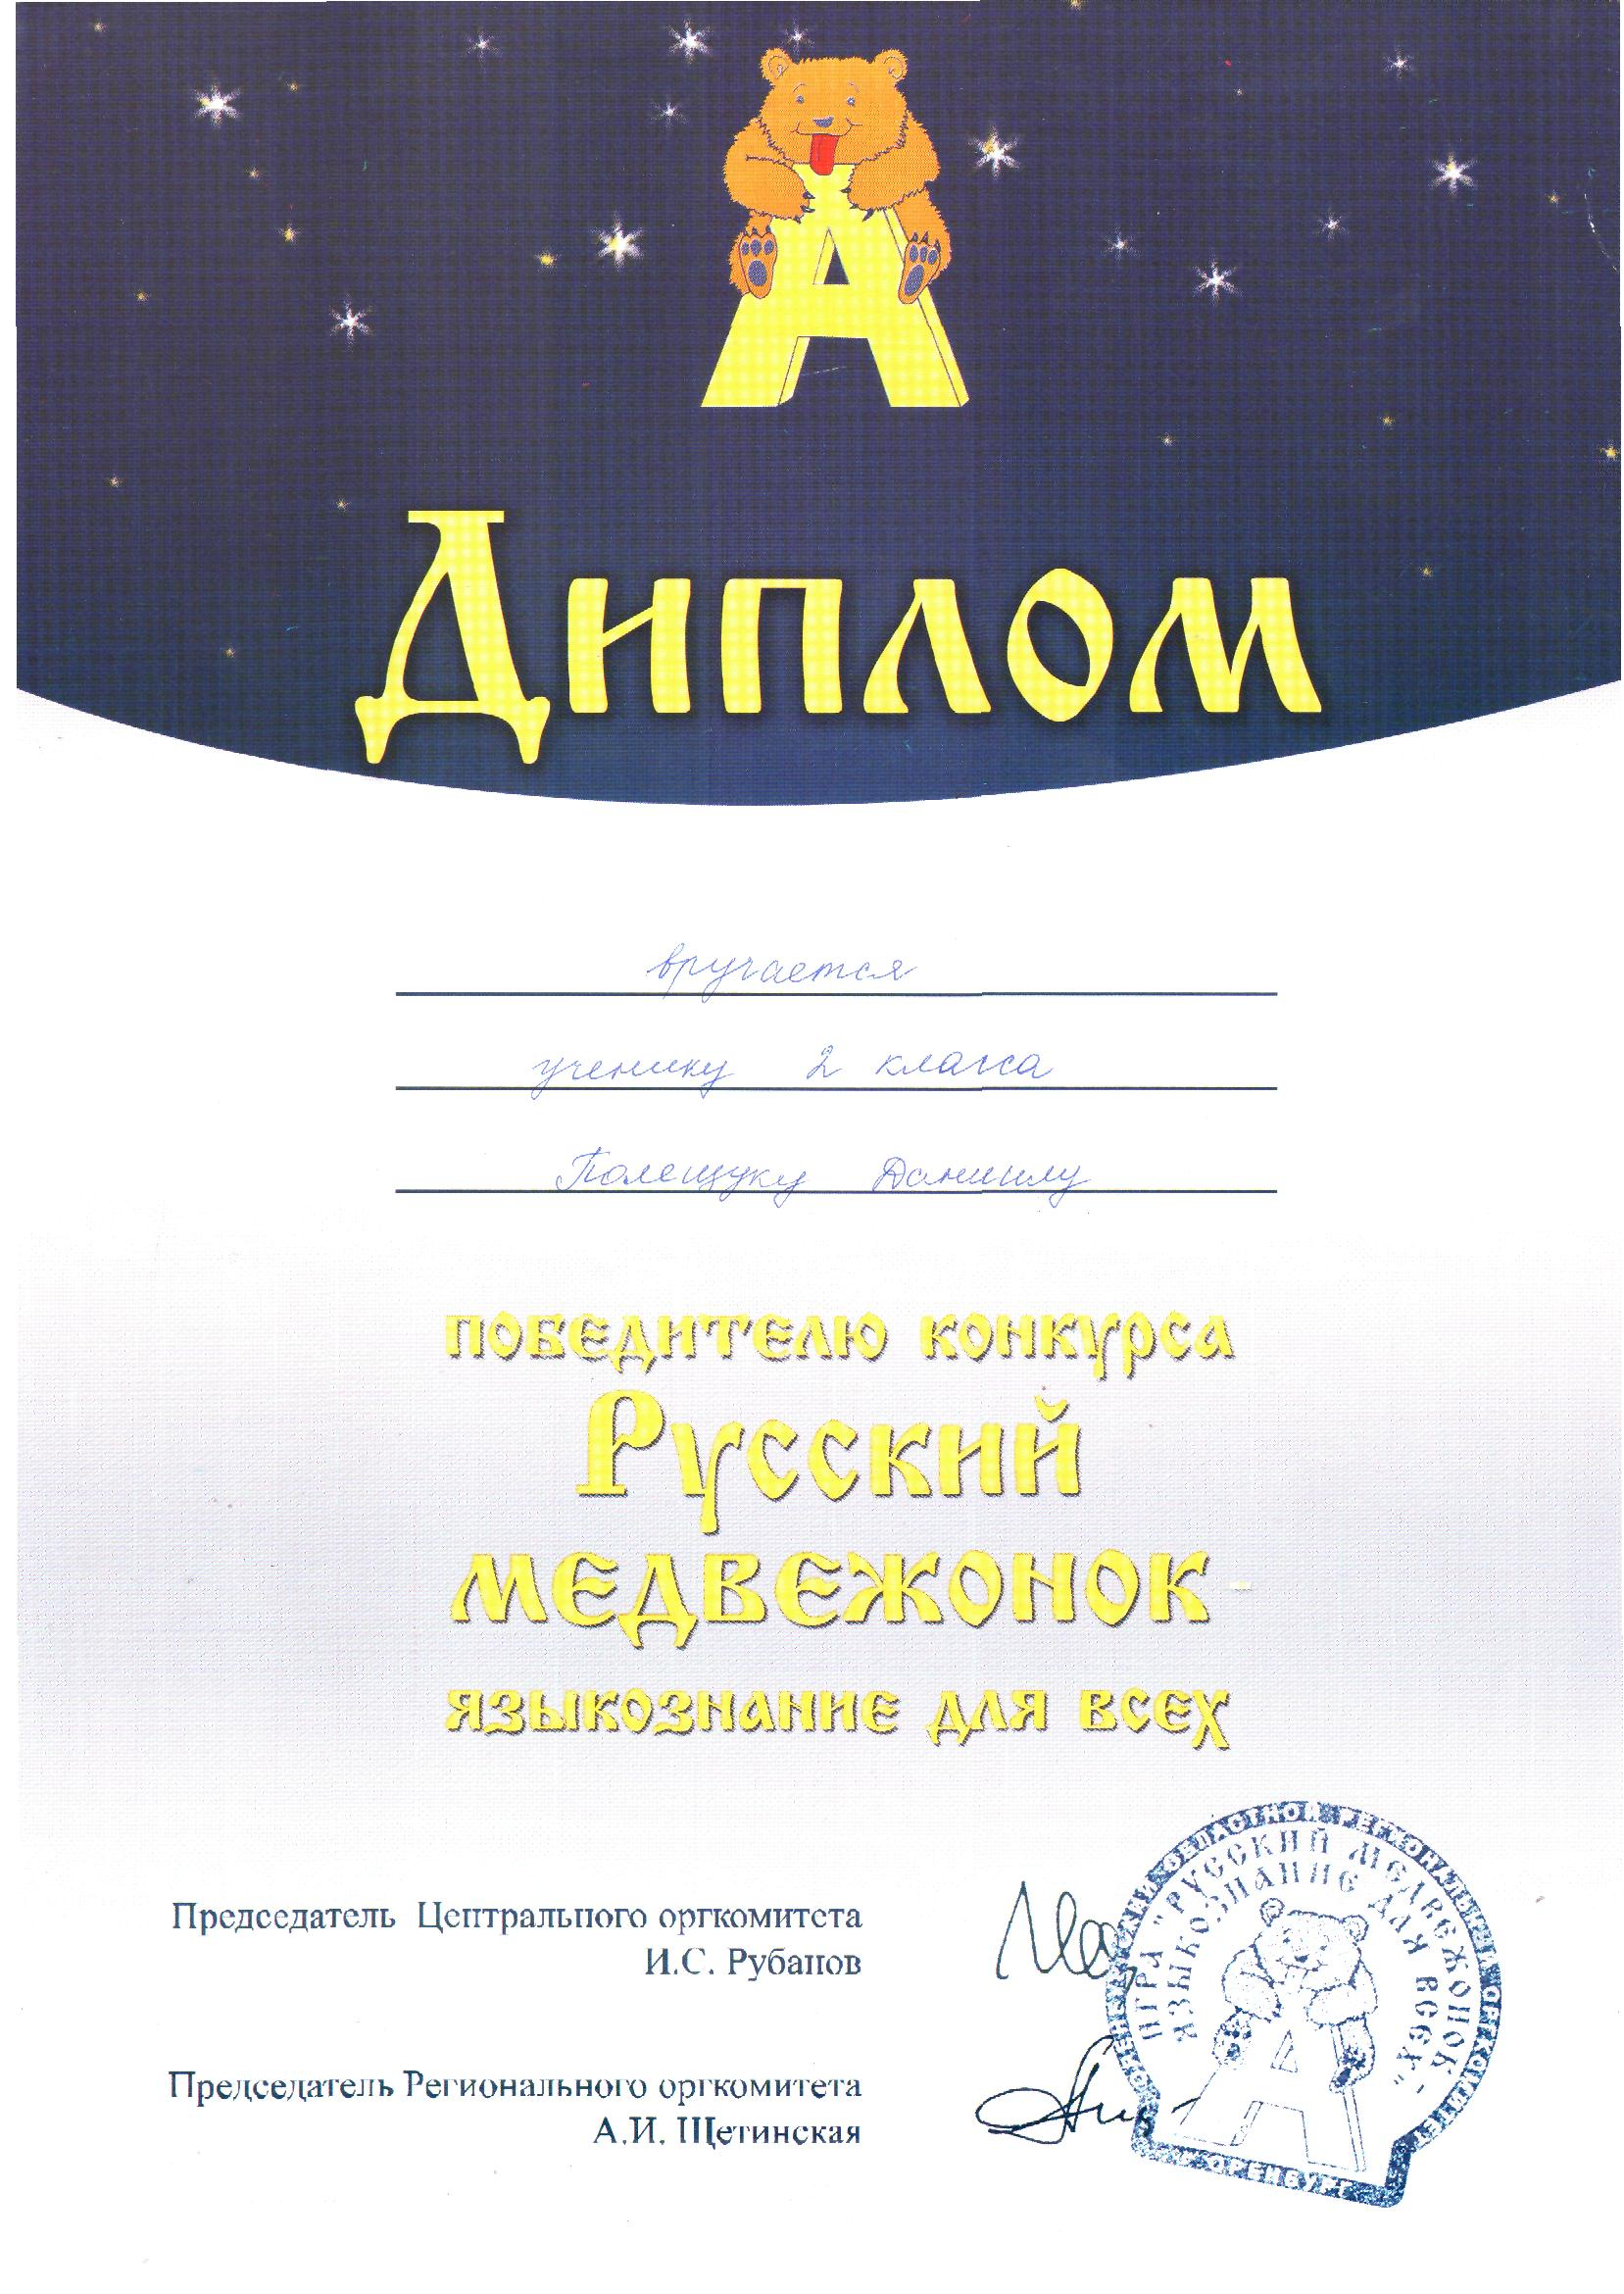 C:\Documents and Settings\User.USER-A1DBA845B9\Мои документы\Файлы Mail.Ru Агента\sergei_752@mail.ru\helios84@mail.ru\ков0010.jpg